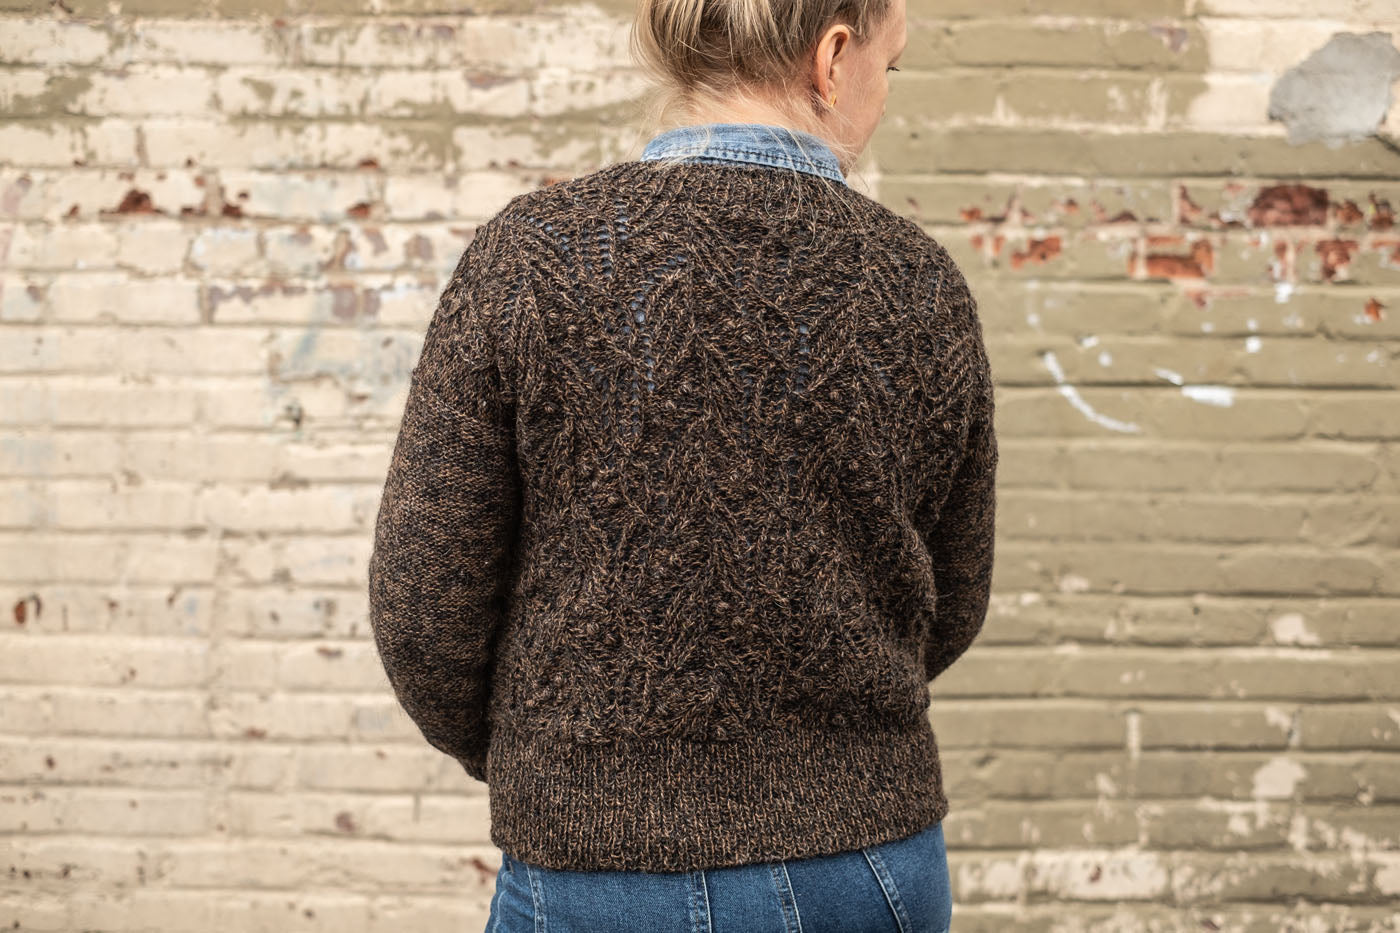 Amber is turned away, showing the back of her brown hand knit sweater is intricately textured with cables, lace and bobbles. Her blonde hair is up in a topknot and she wears blue jeans and an indigo button up under her hand-knit sweater. Behind her a painted brick wall is a patchwork of taupe hues.